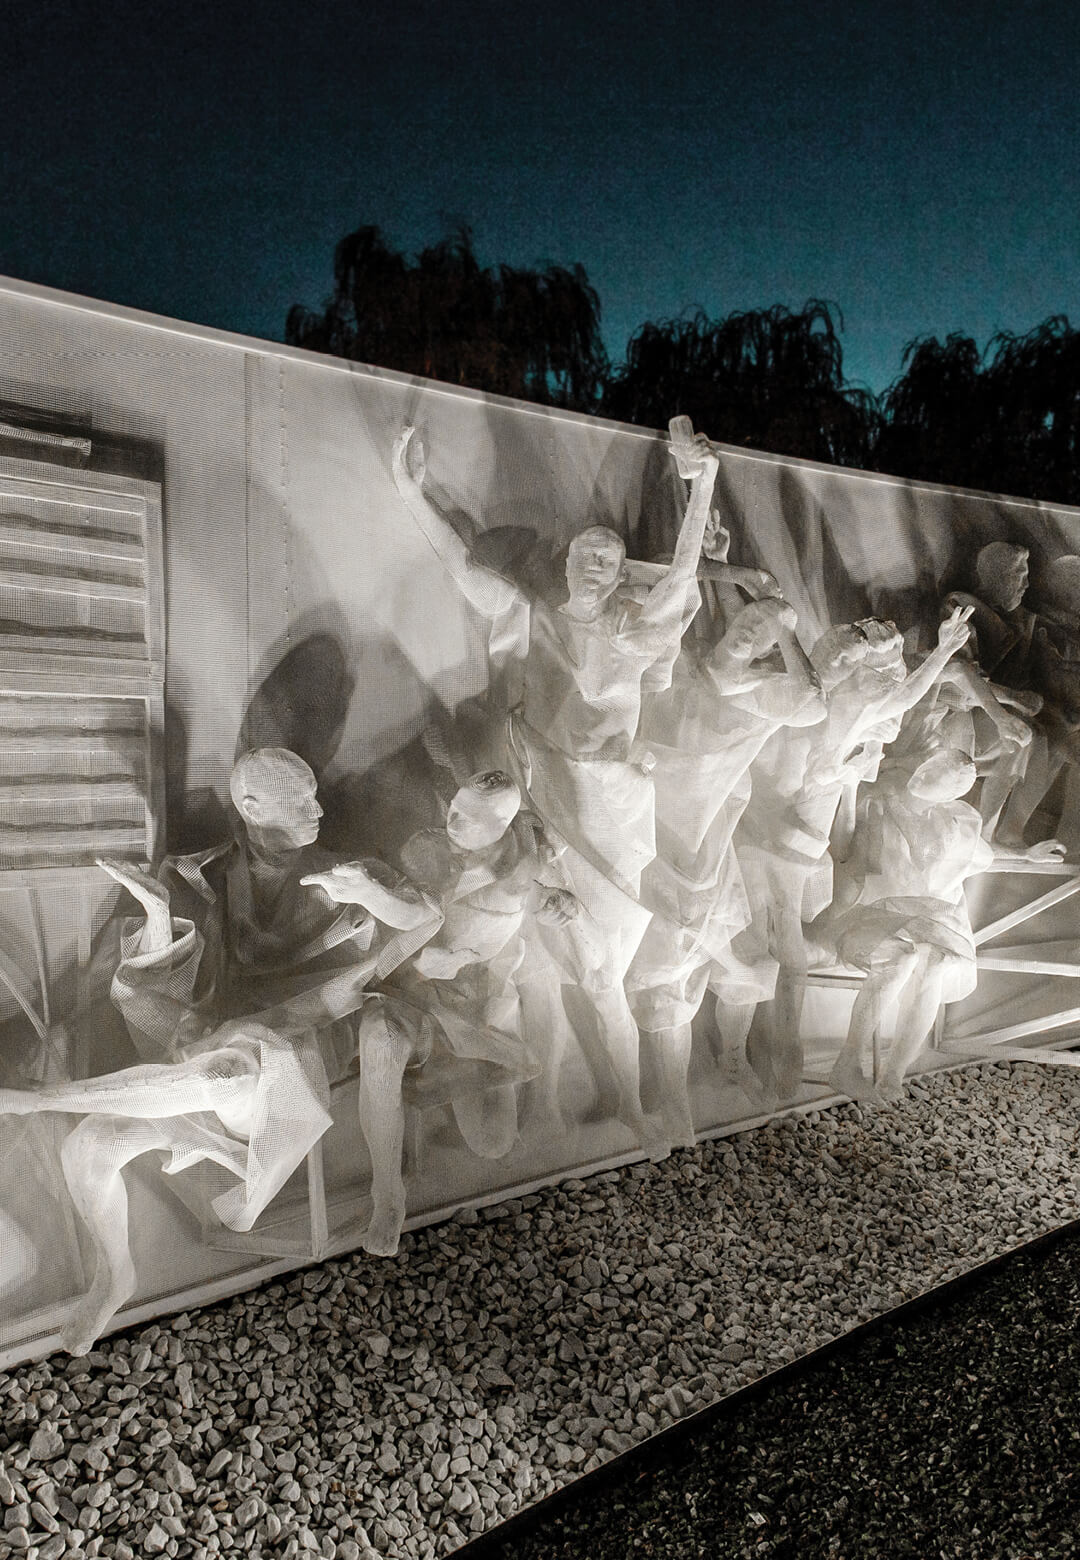 A bas-relief sculpture by Recycle Group in Krasnodar | Artificial Environment by Recycle Group | STIRworld